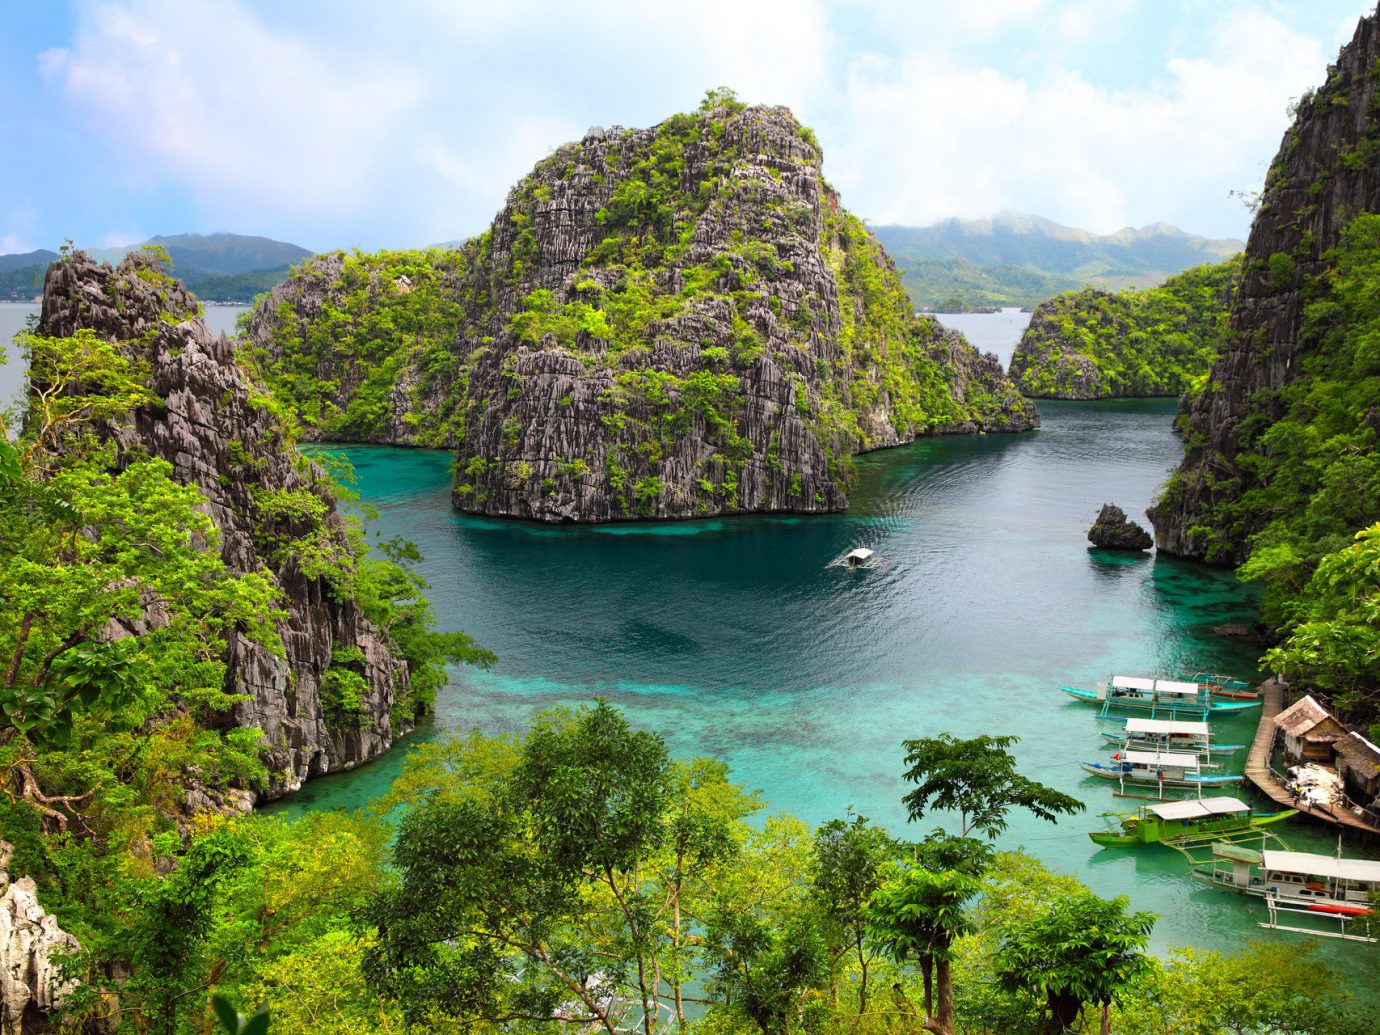 Beach Trip Ideas tree outdoor water sky Nature landform River geographical feature body of water mountain Lake surrounded tourism fjord bay Jungle Coast rainforest terrain cliff national park traveling hillside